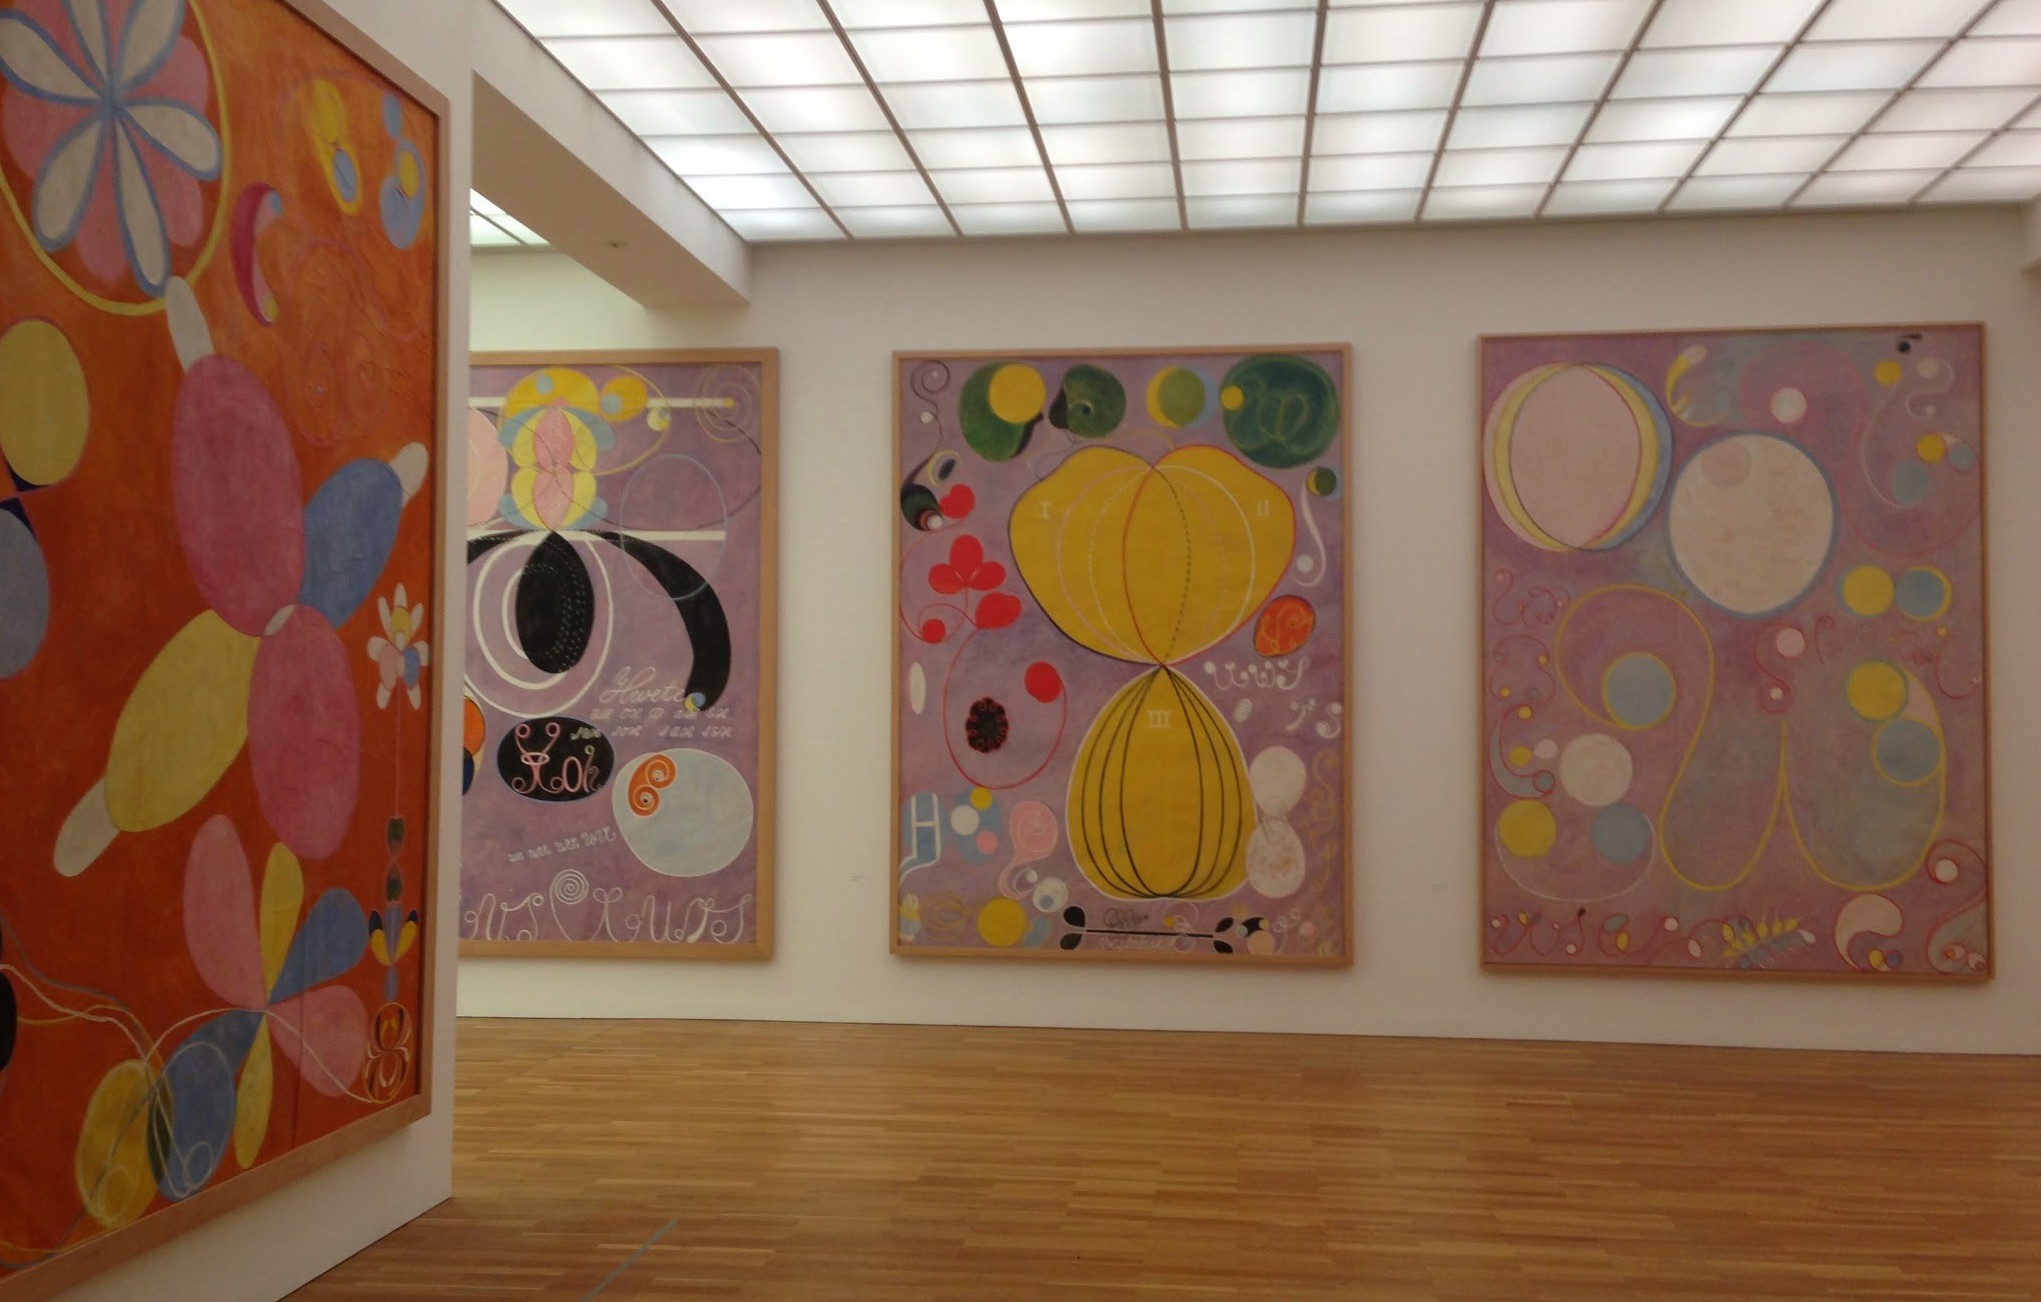 One of my favorite exhibitions from last year:  Hilma af Klint at the Hamburger Bahnhof Museum